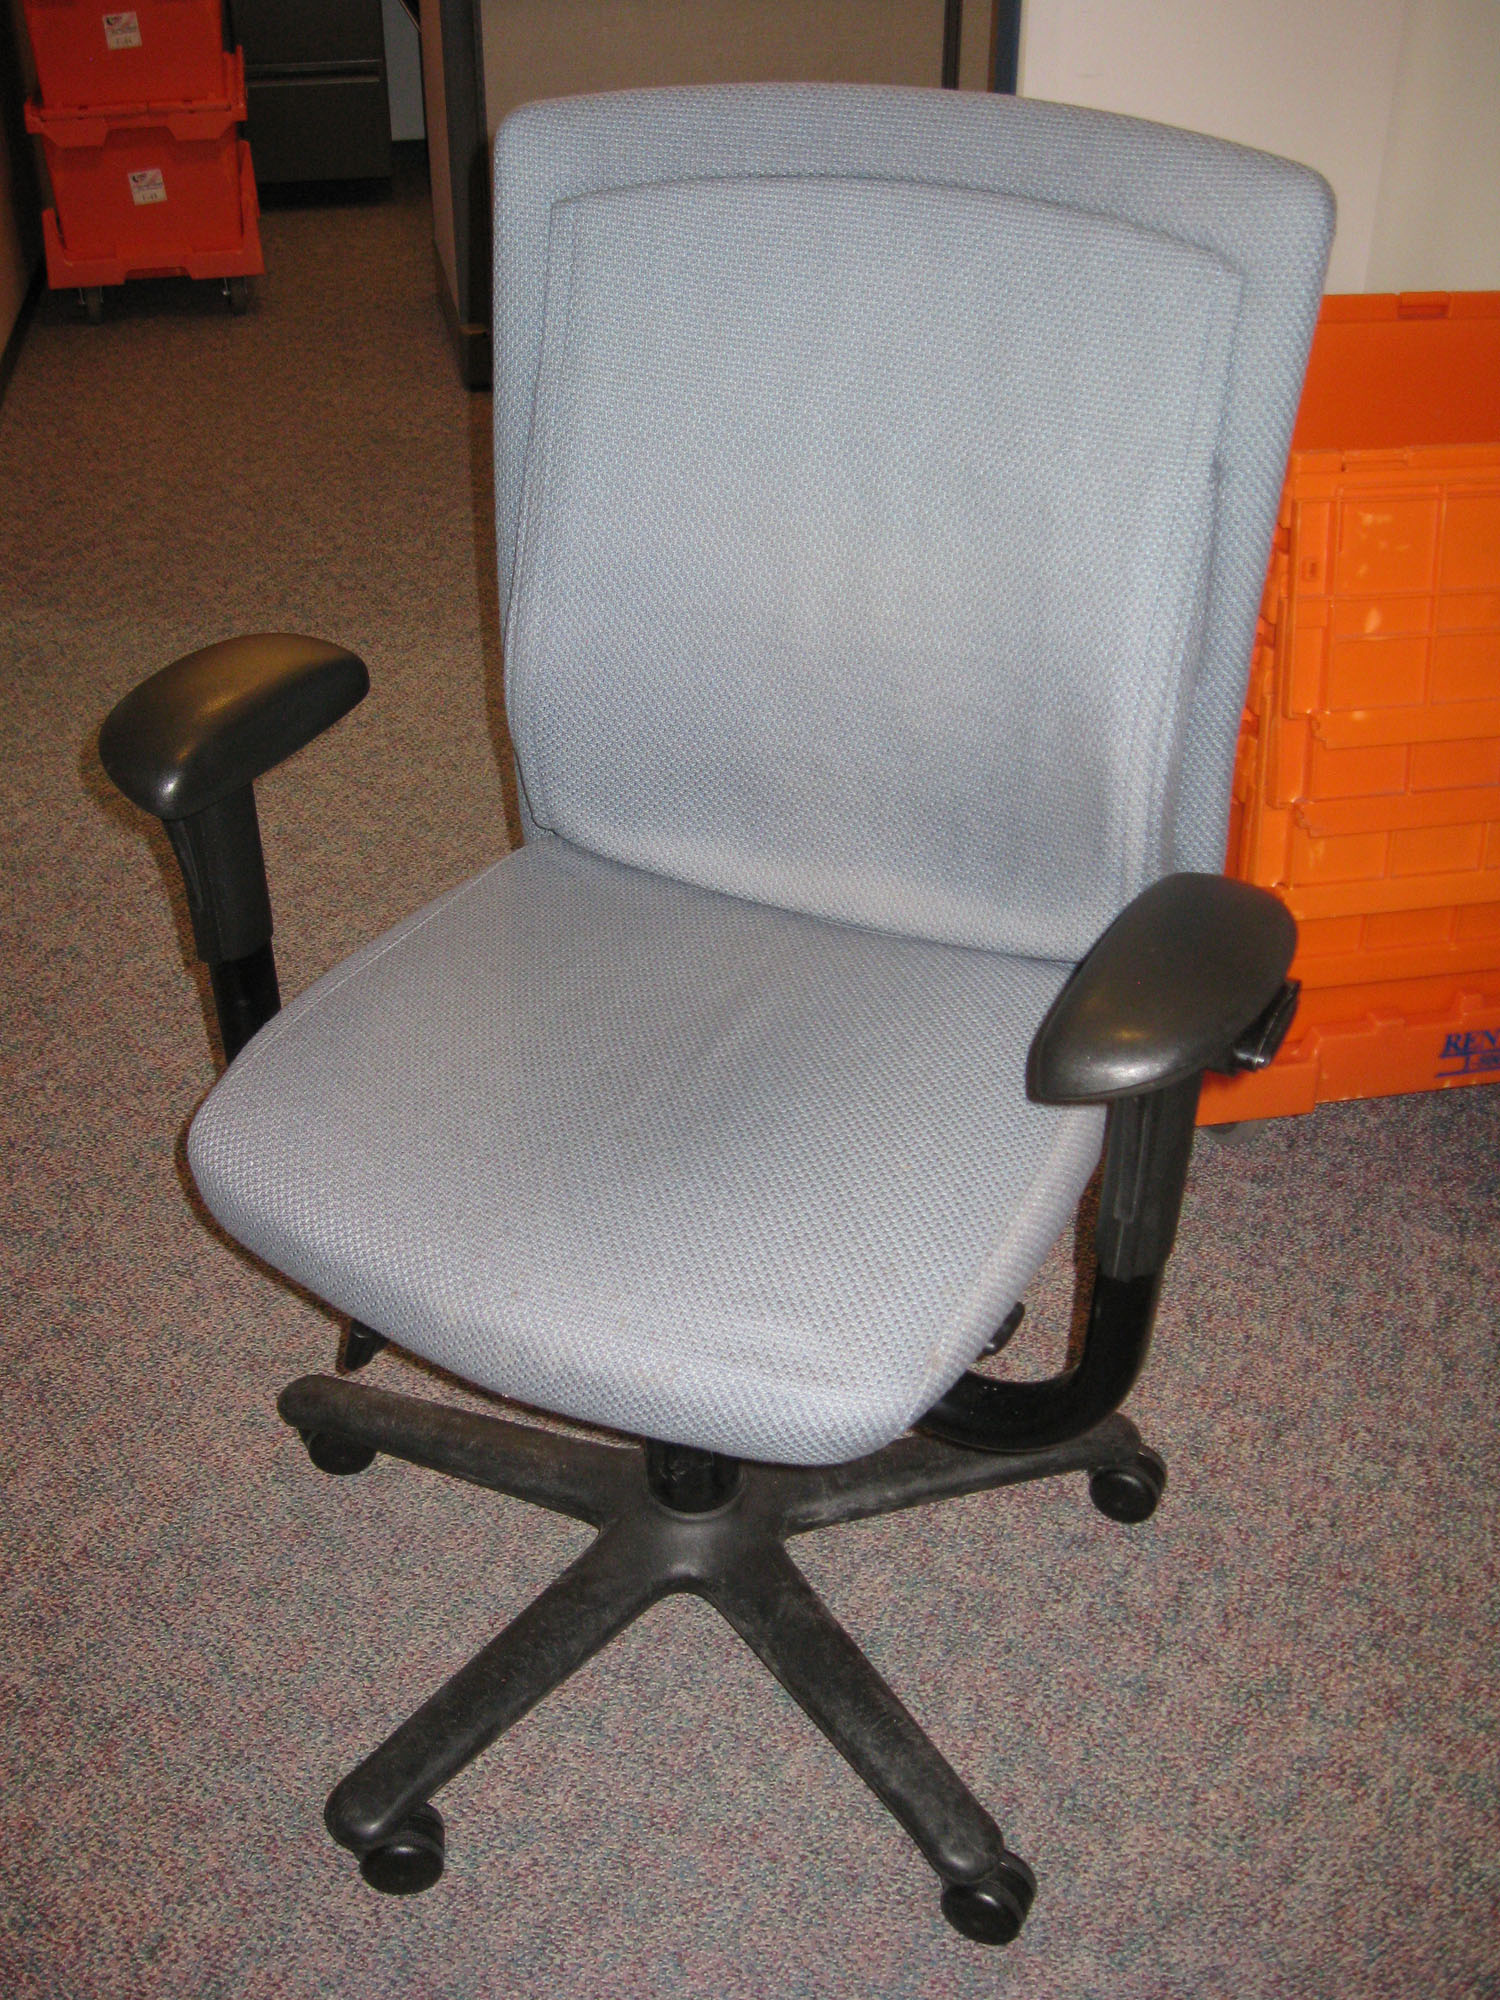 hot buys task chair steelcase affordable office chair